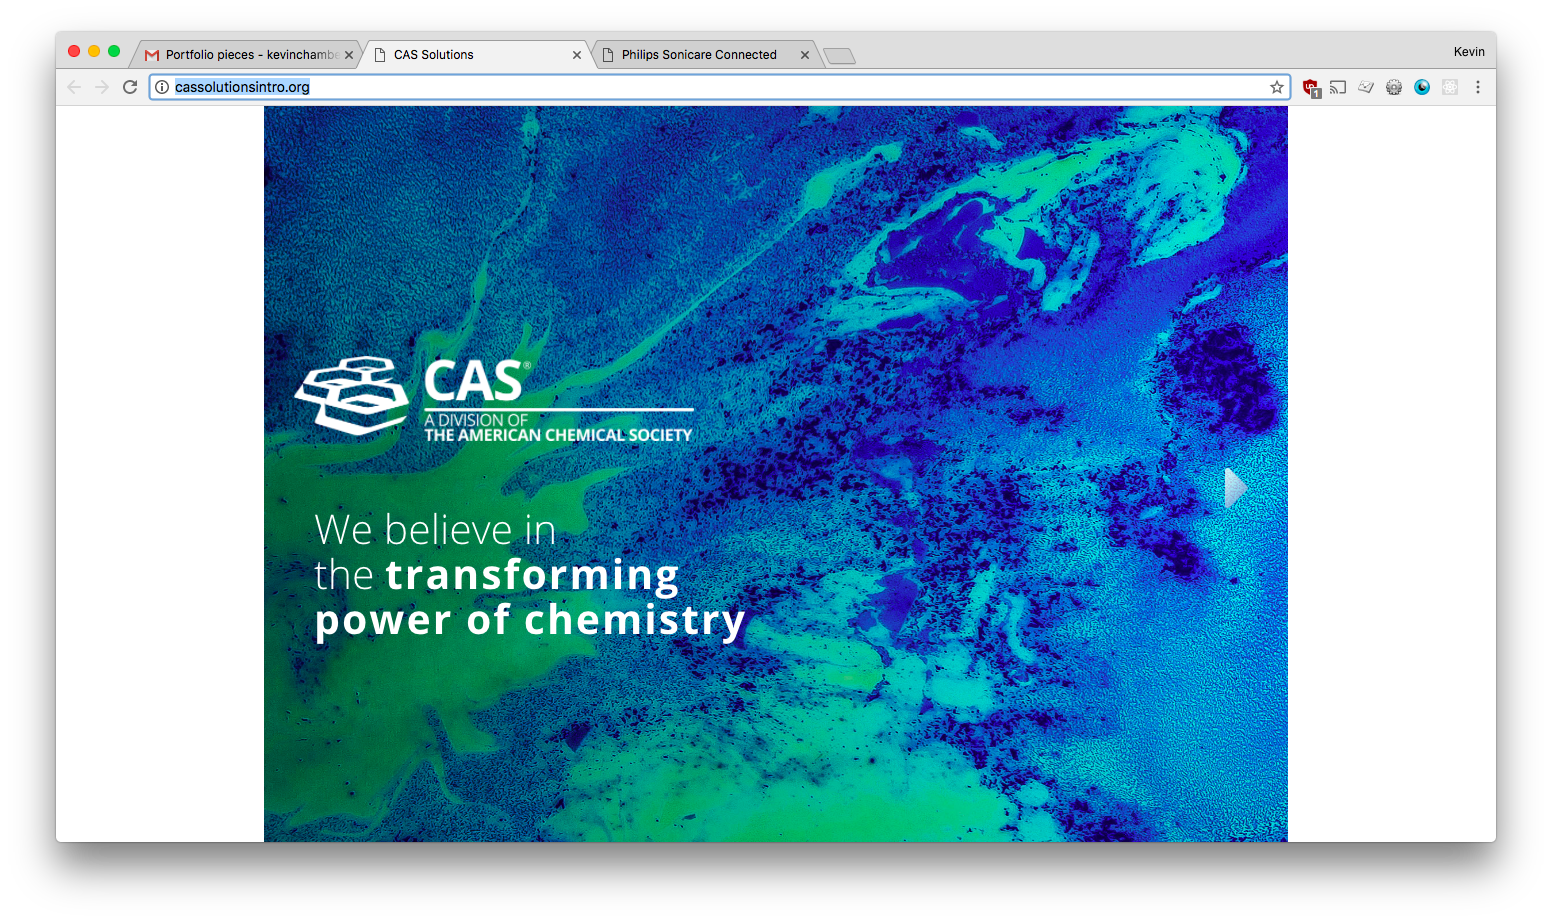 Cas and Philips Sonicare projects